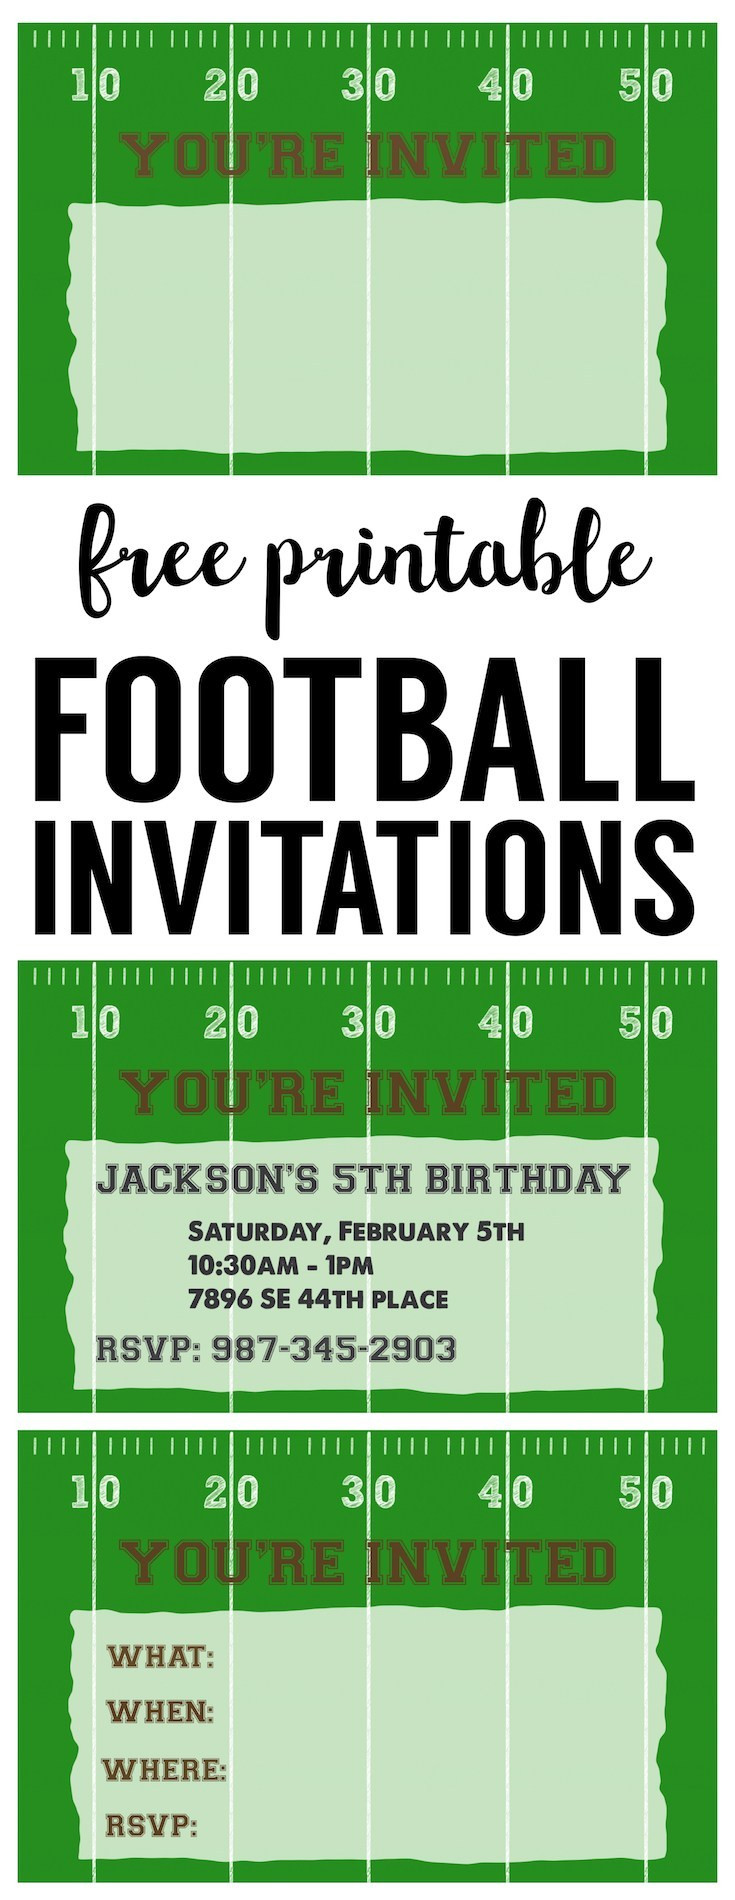 Best ideas about Football Birthday Party Invitations . Save or Pin Football Party Invitation Template Free Printable Now.